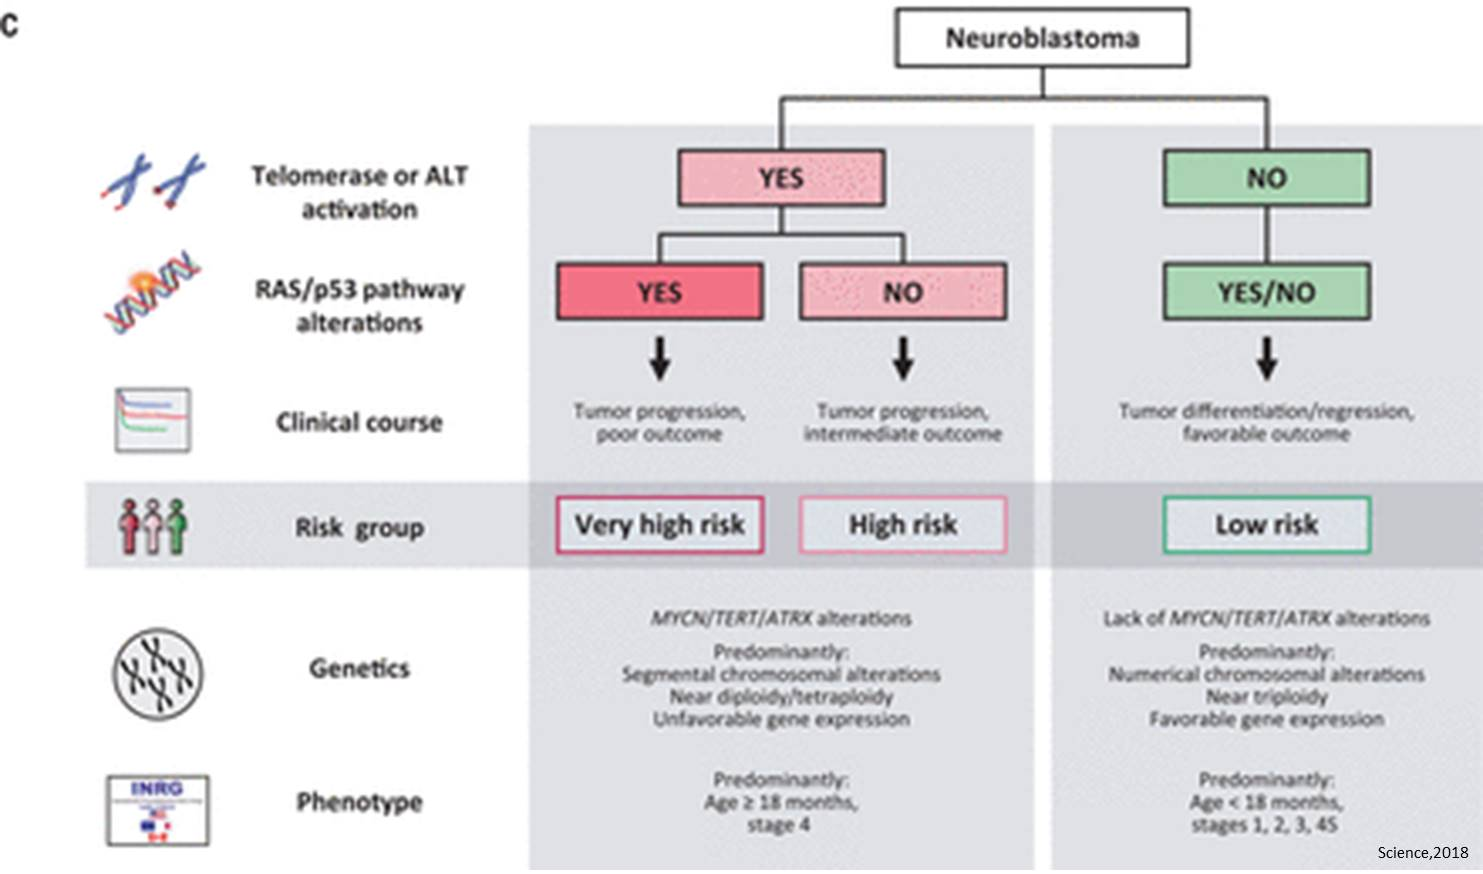 A mechanistic approach to neuroblastoma prognosis and risk